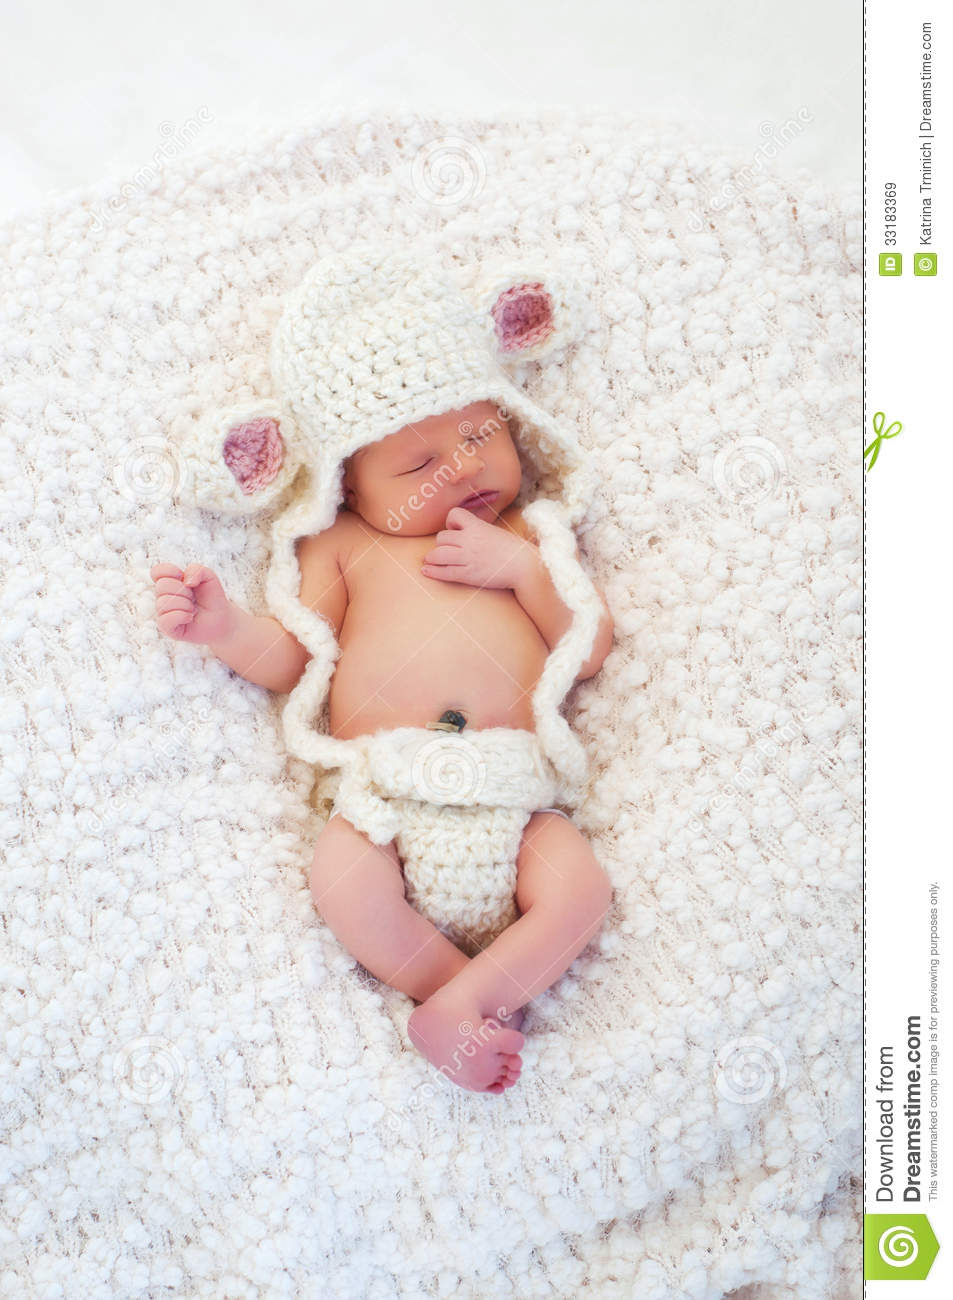 Newborn Baby Wearing A Lamb Costume Stock Image - Image of innocent ... b4d4a0fc3d3a